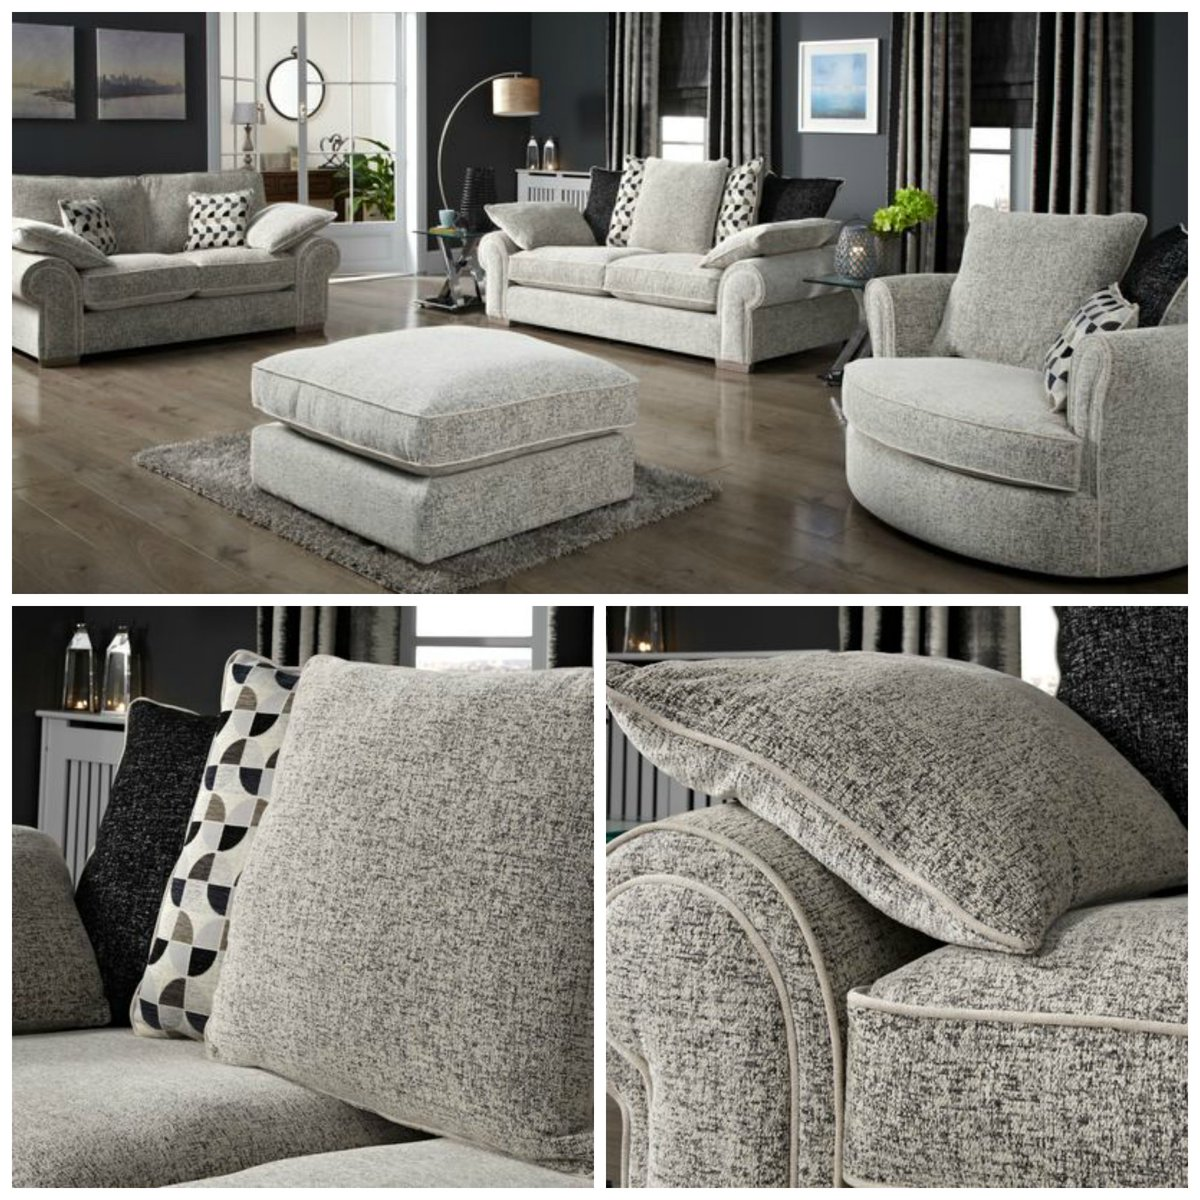 Scs Sofas On Twitter Spruce Up Your Living Room With This Buzz 3 Seater Terback Sofa Now Only 595 S Open Til 10pm Today